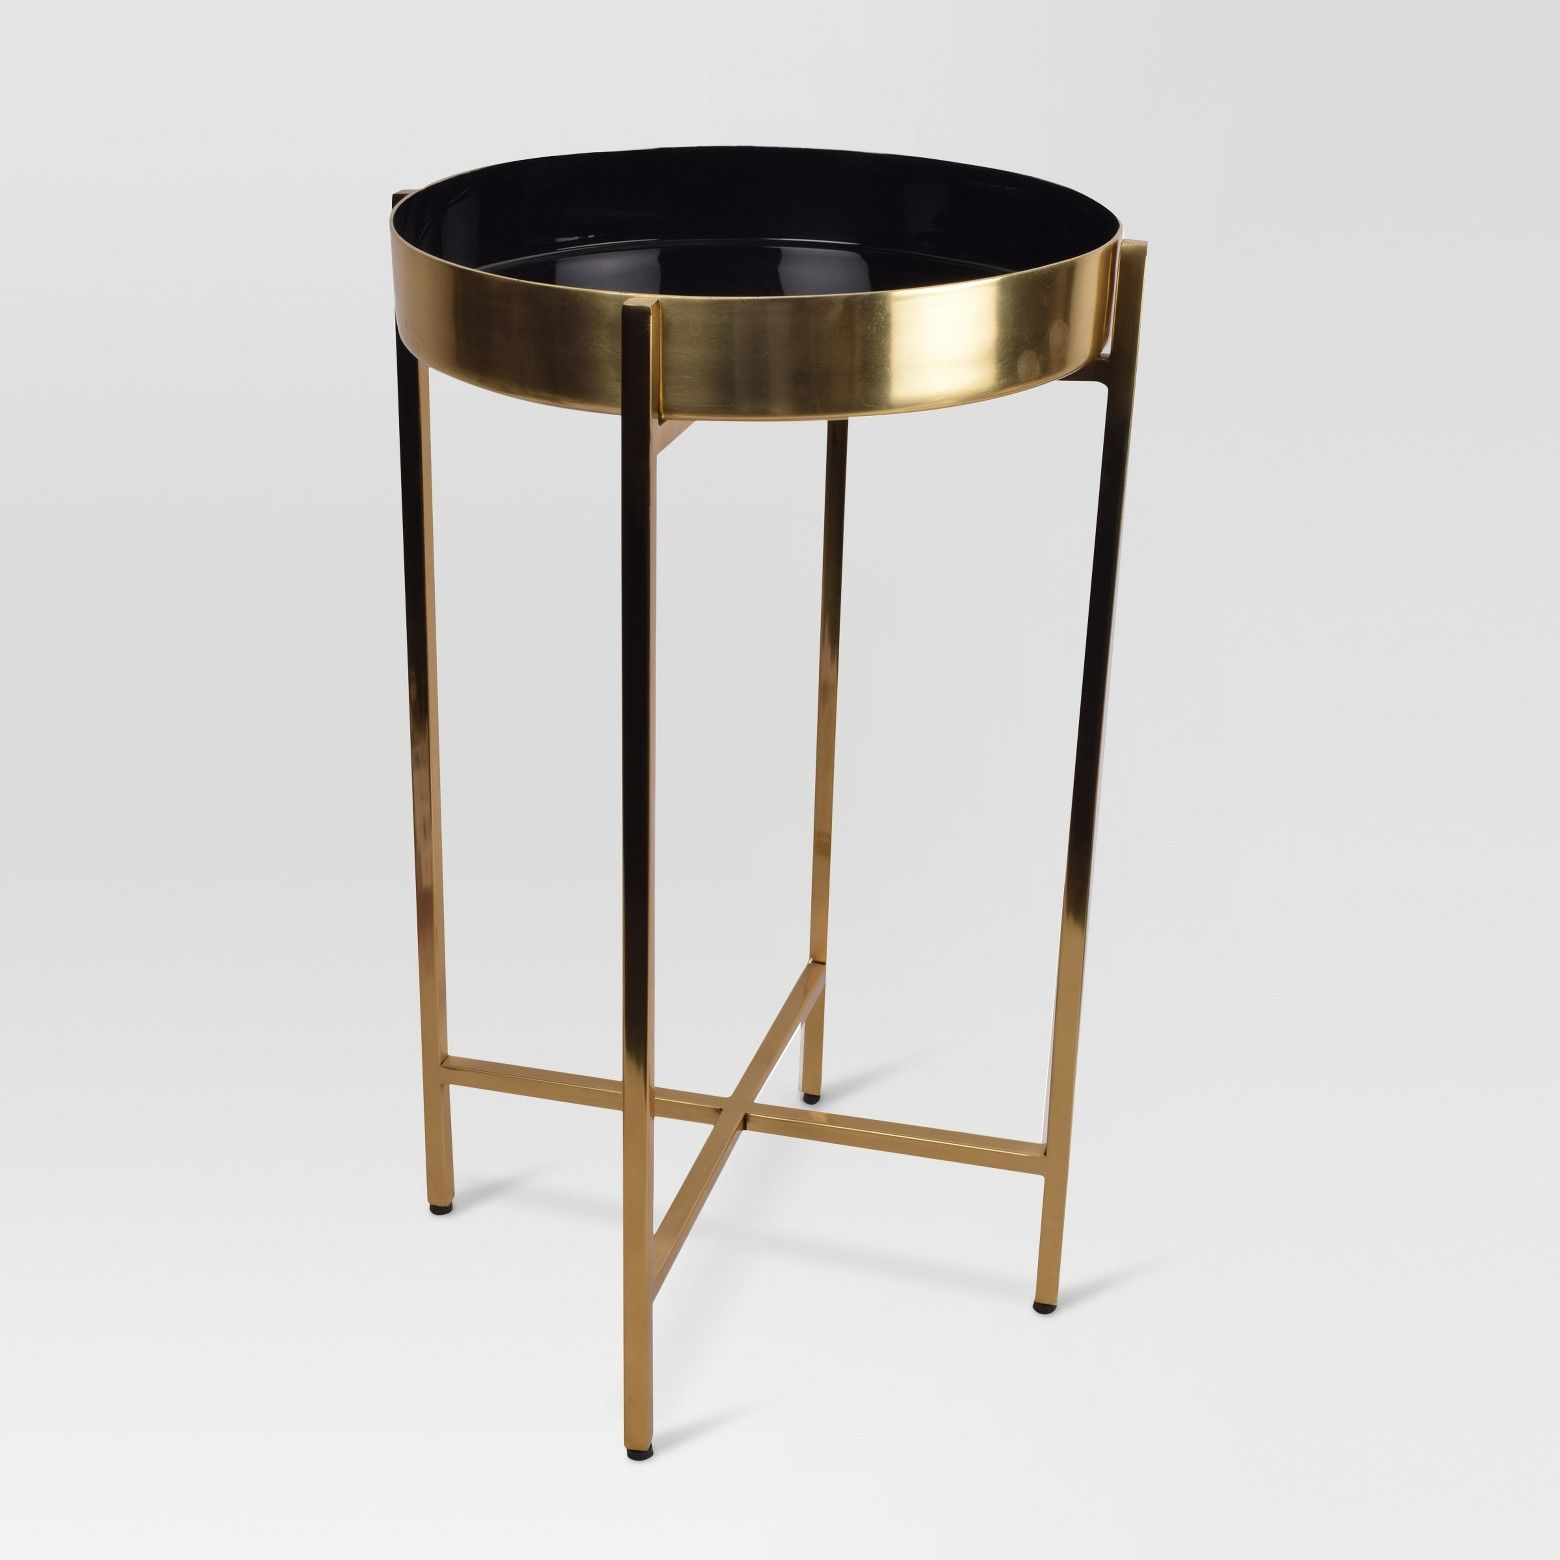 give your space fresh update with this metal accent table from target black constructed durable steel modern features gold and ombre design complete desk sofa for small living